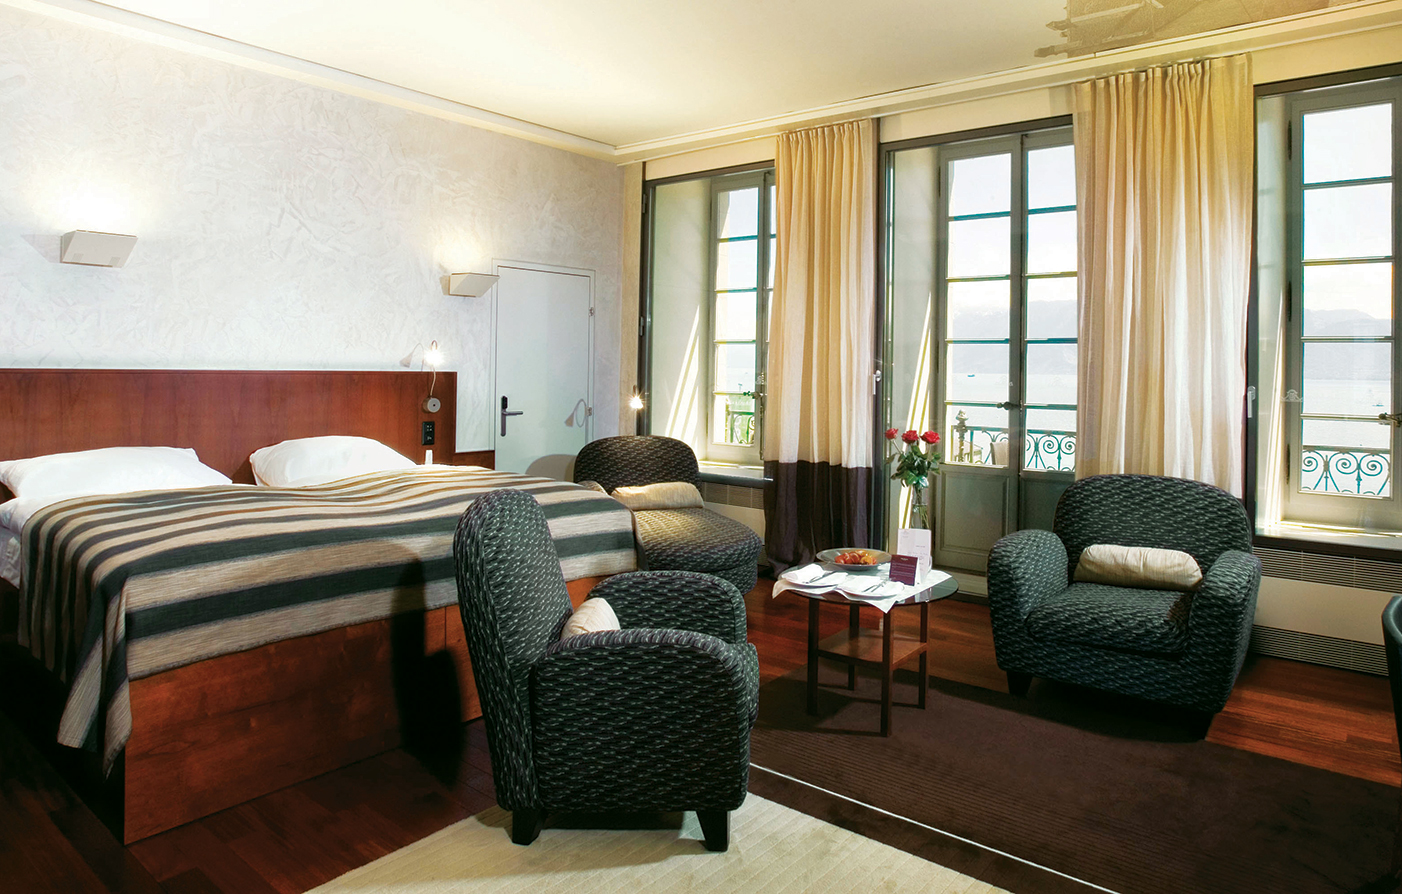 Accommodations:      Hotel Angleterre and Residence  in Lausanne-Ouchy